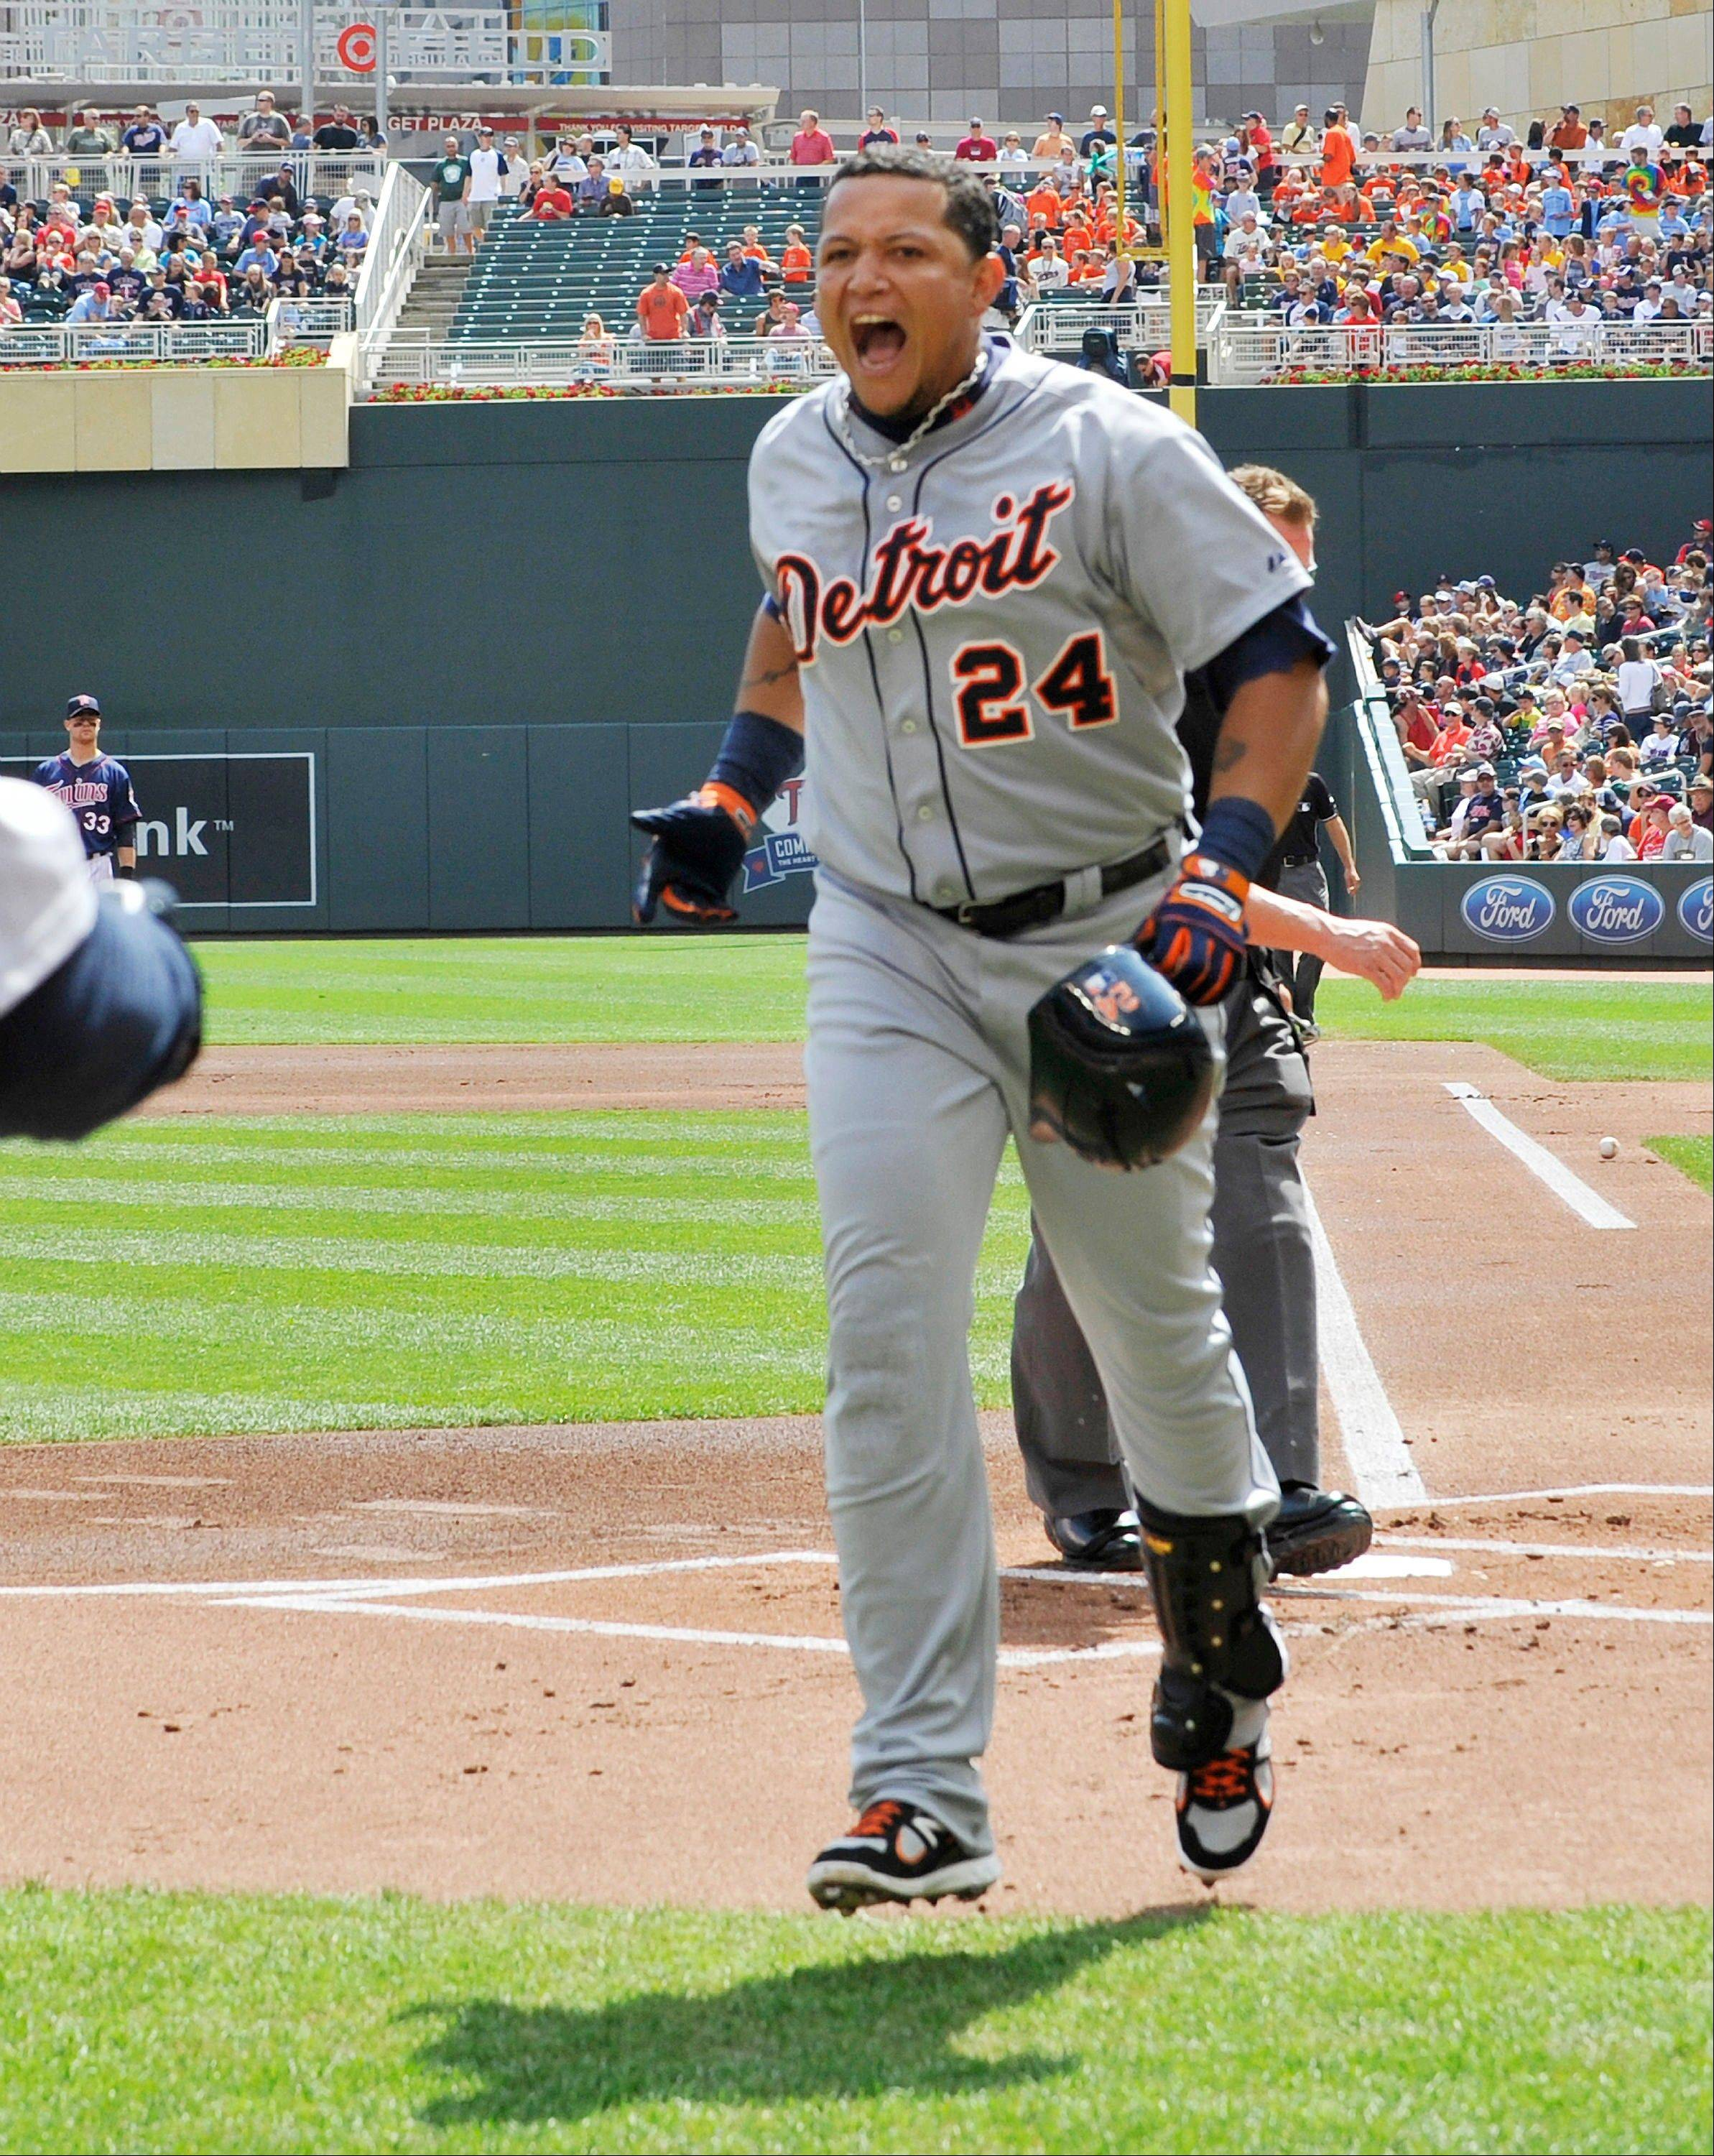 The Detroit Tigers' Miguel Cabrera celebrates his solo home run off Minnesota Twins' Cole DeVries Wednesday during the first inning in Minneapolis. The Tigers won 5-1.